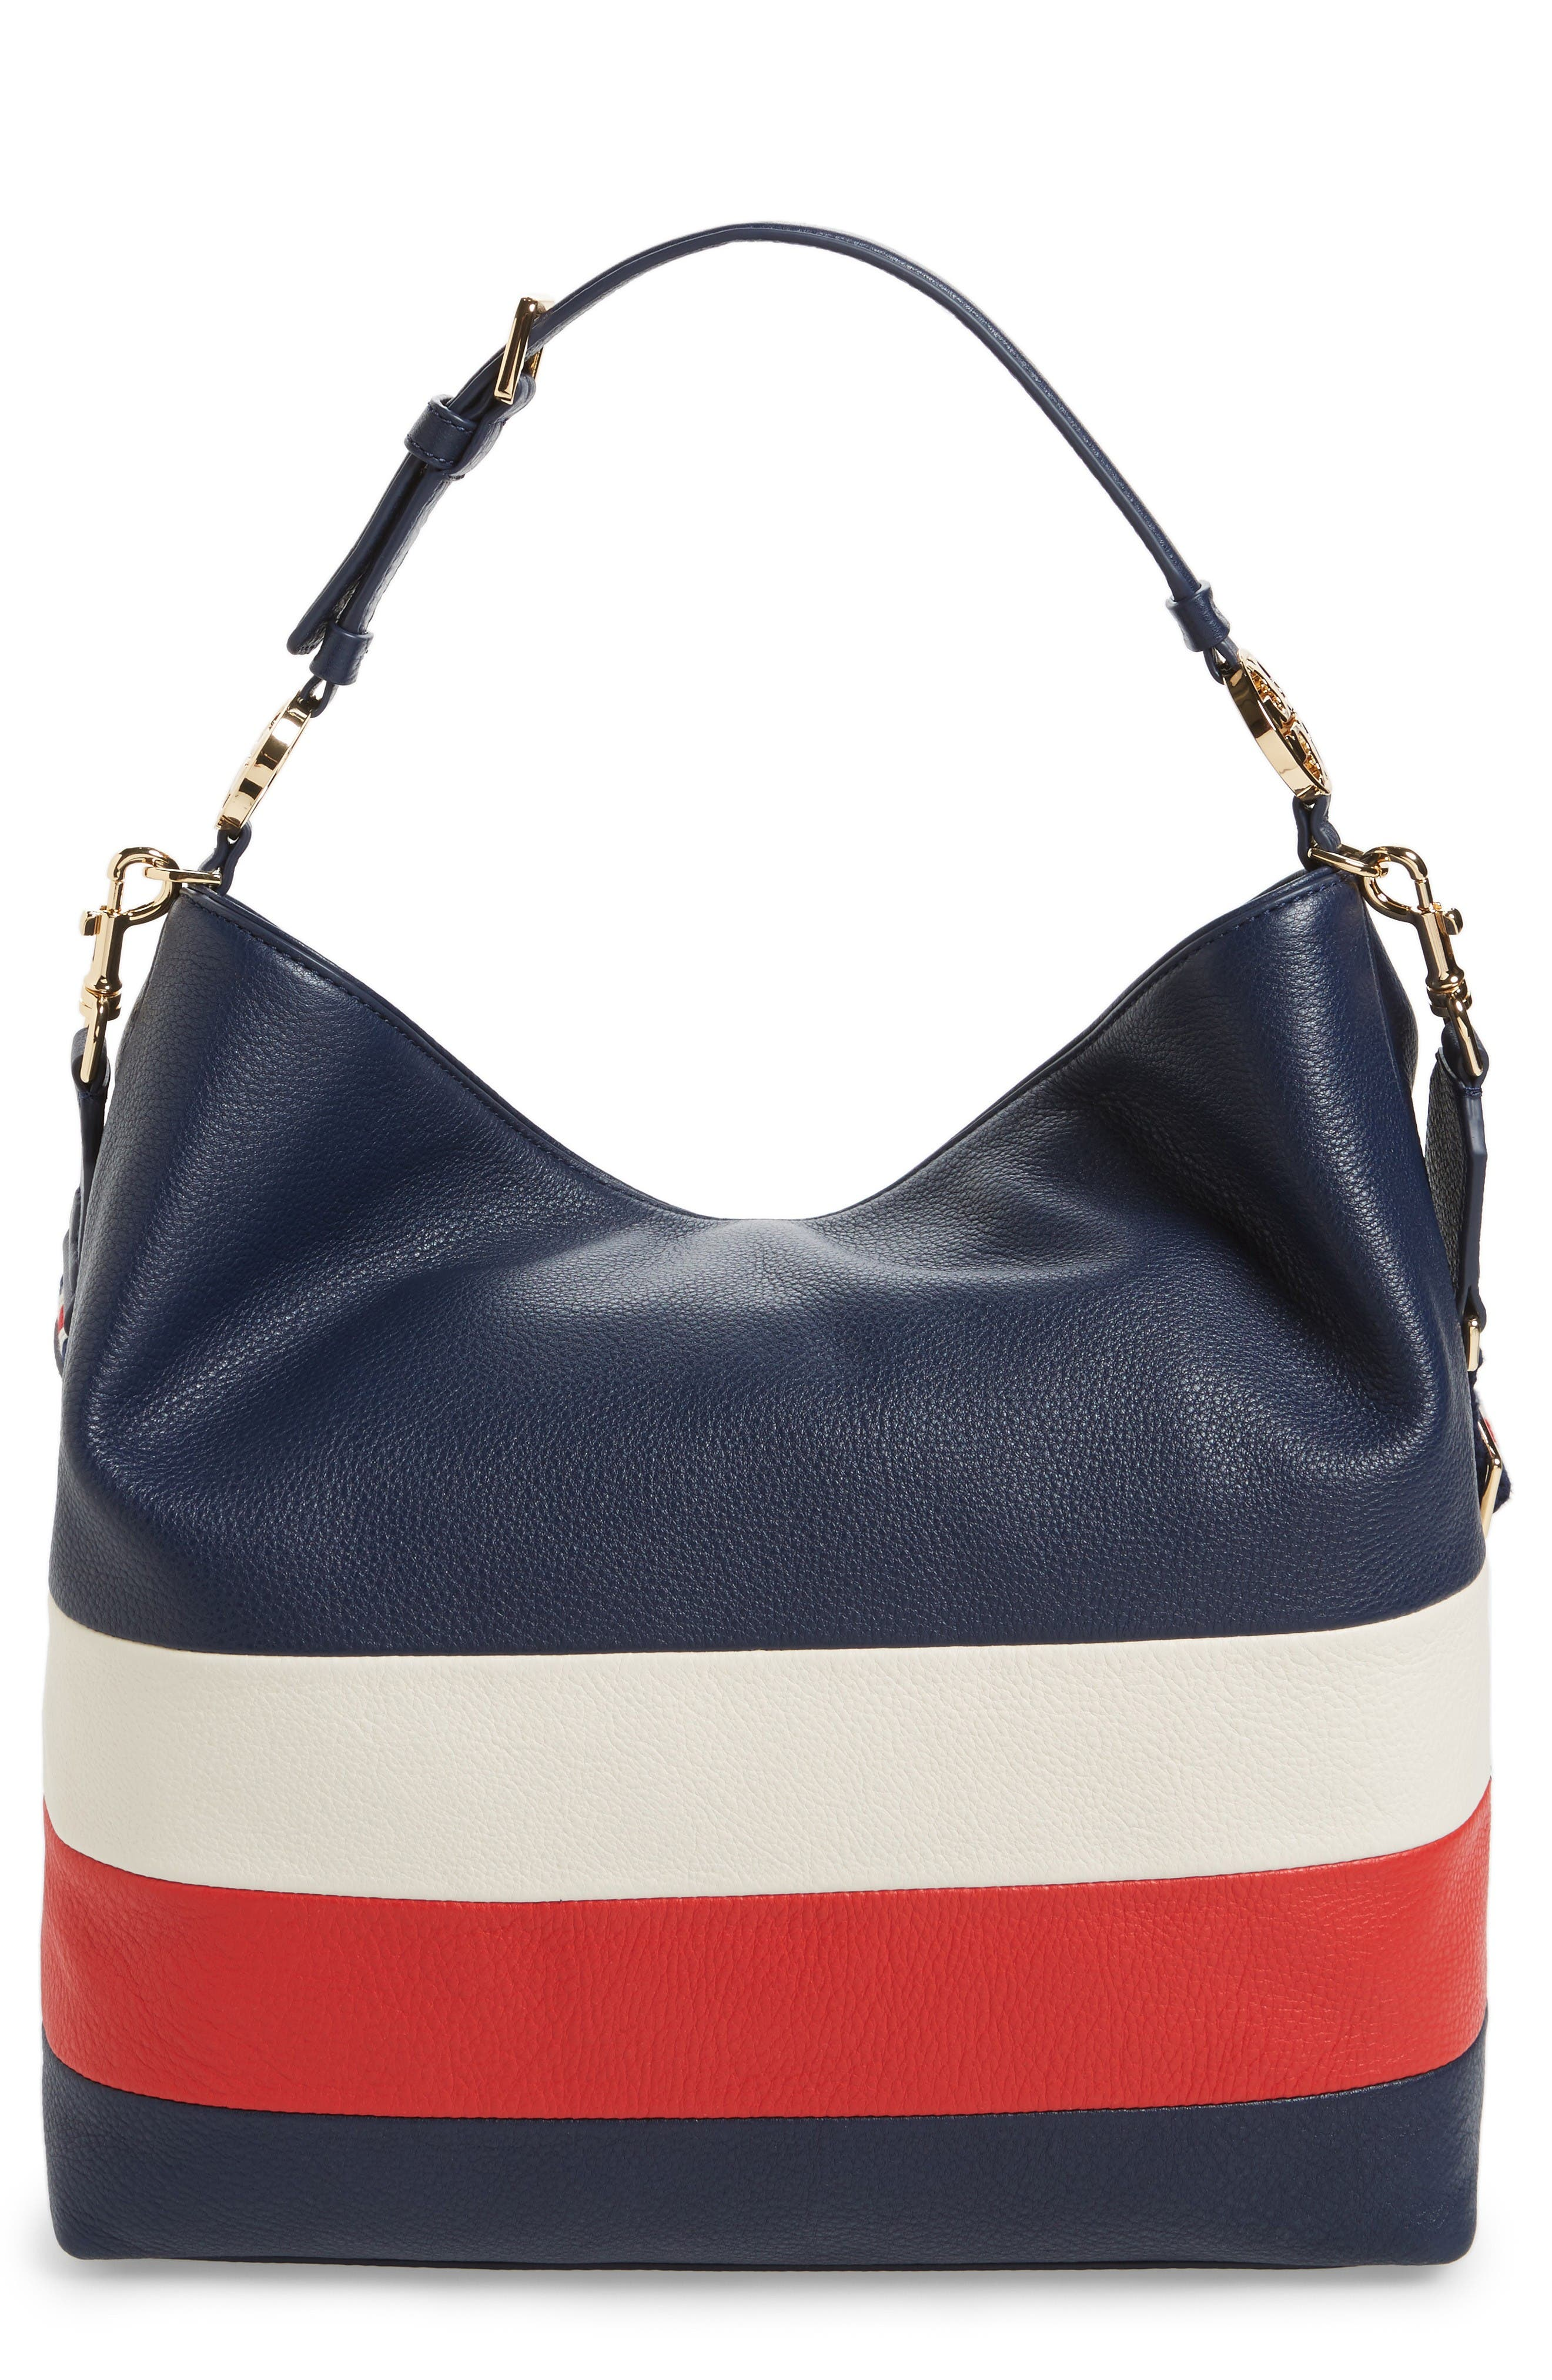 Main Image - Tory Burch Stripe Duet Leather Hobo